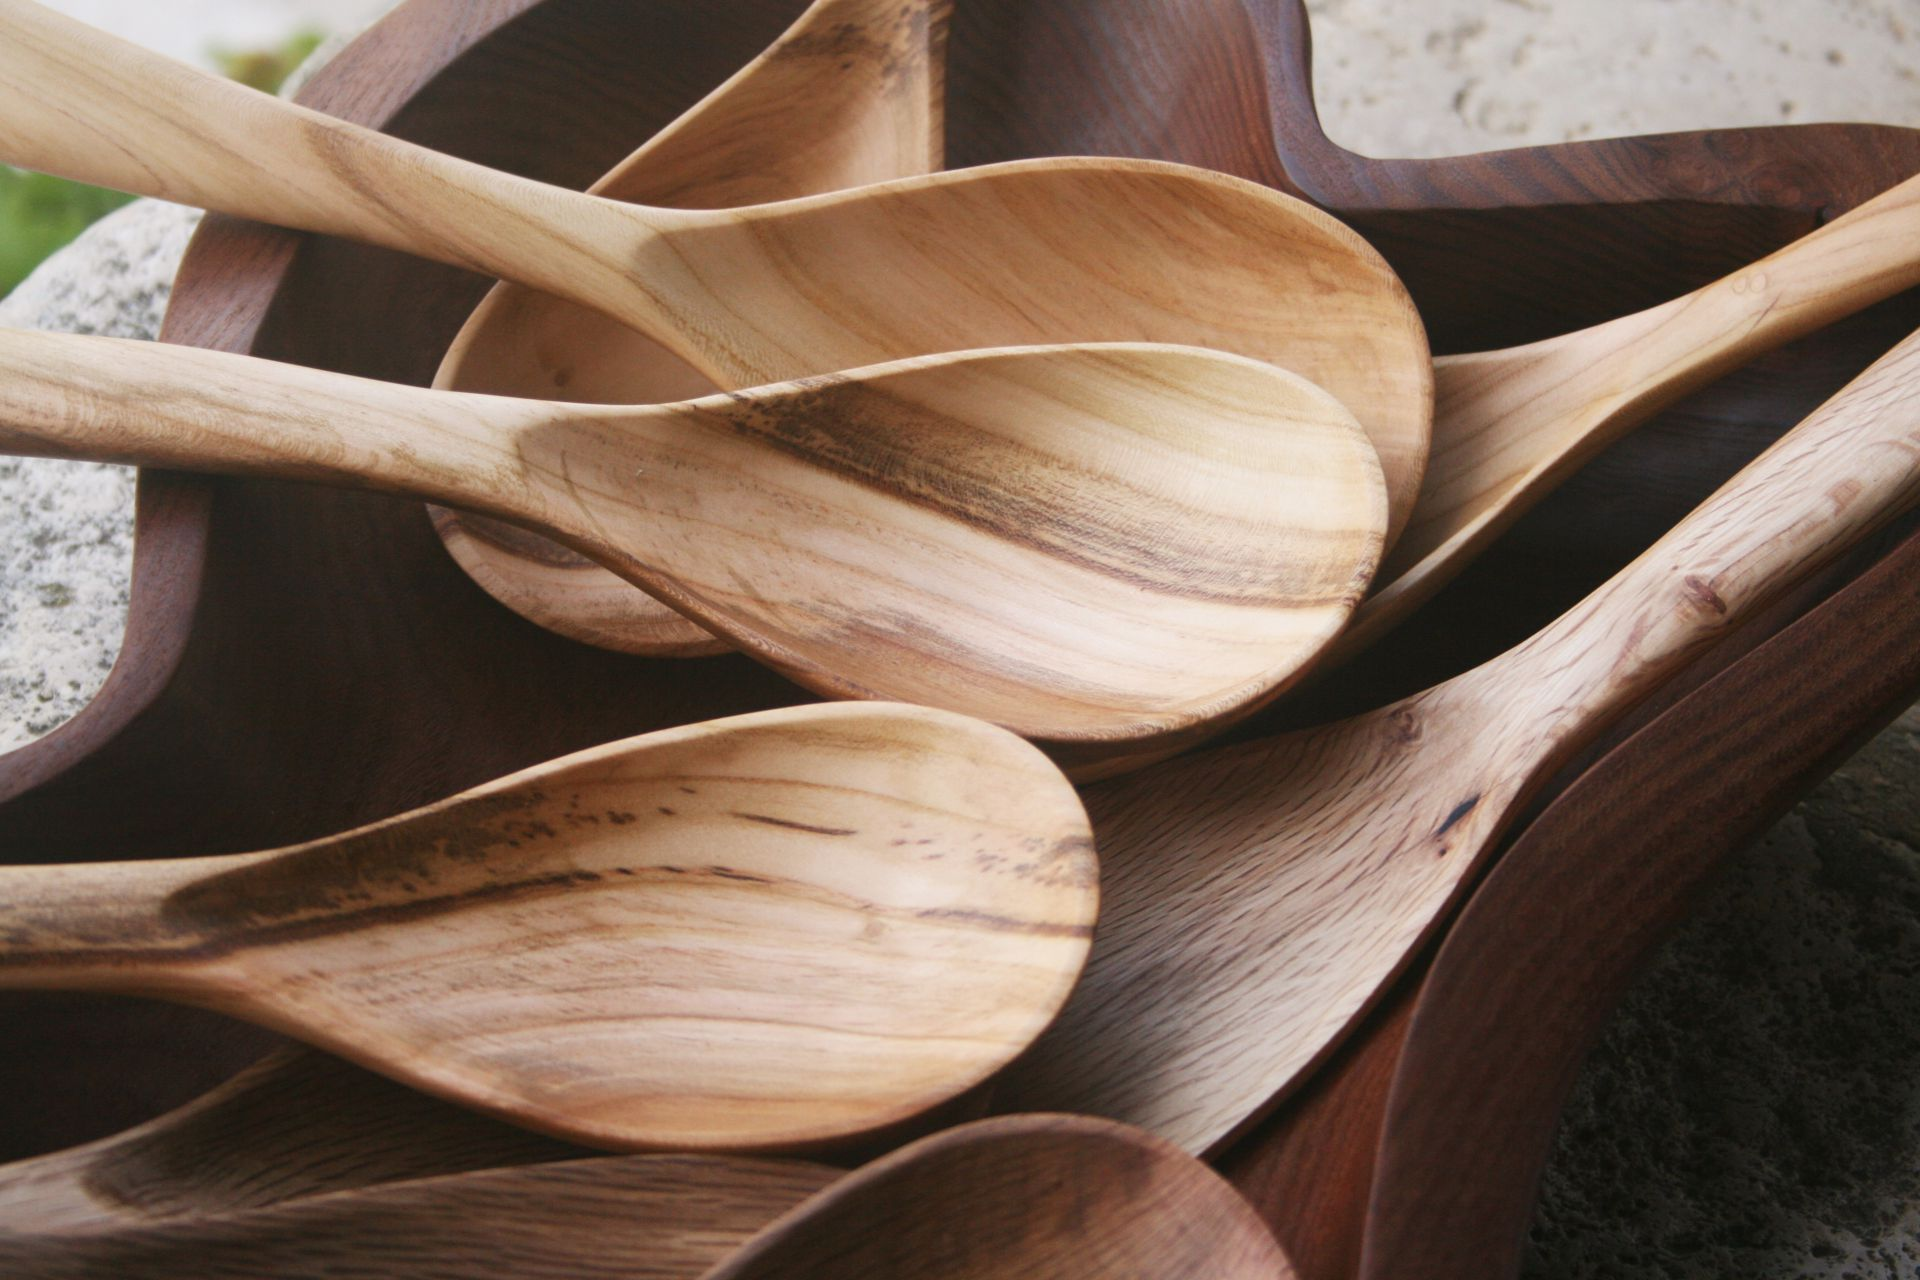 apricot wood spoons ladles unique handmade sanisio artist design home detail kitchen accessories